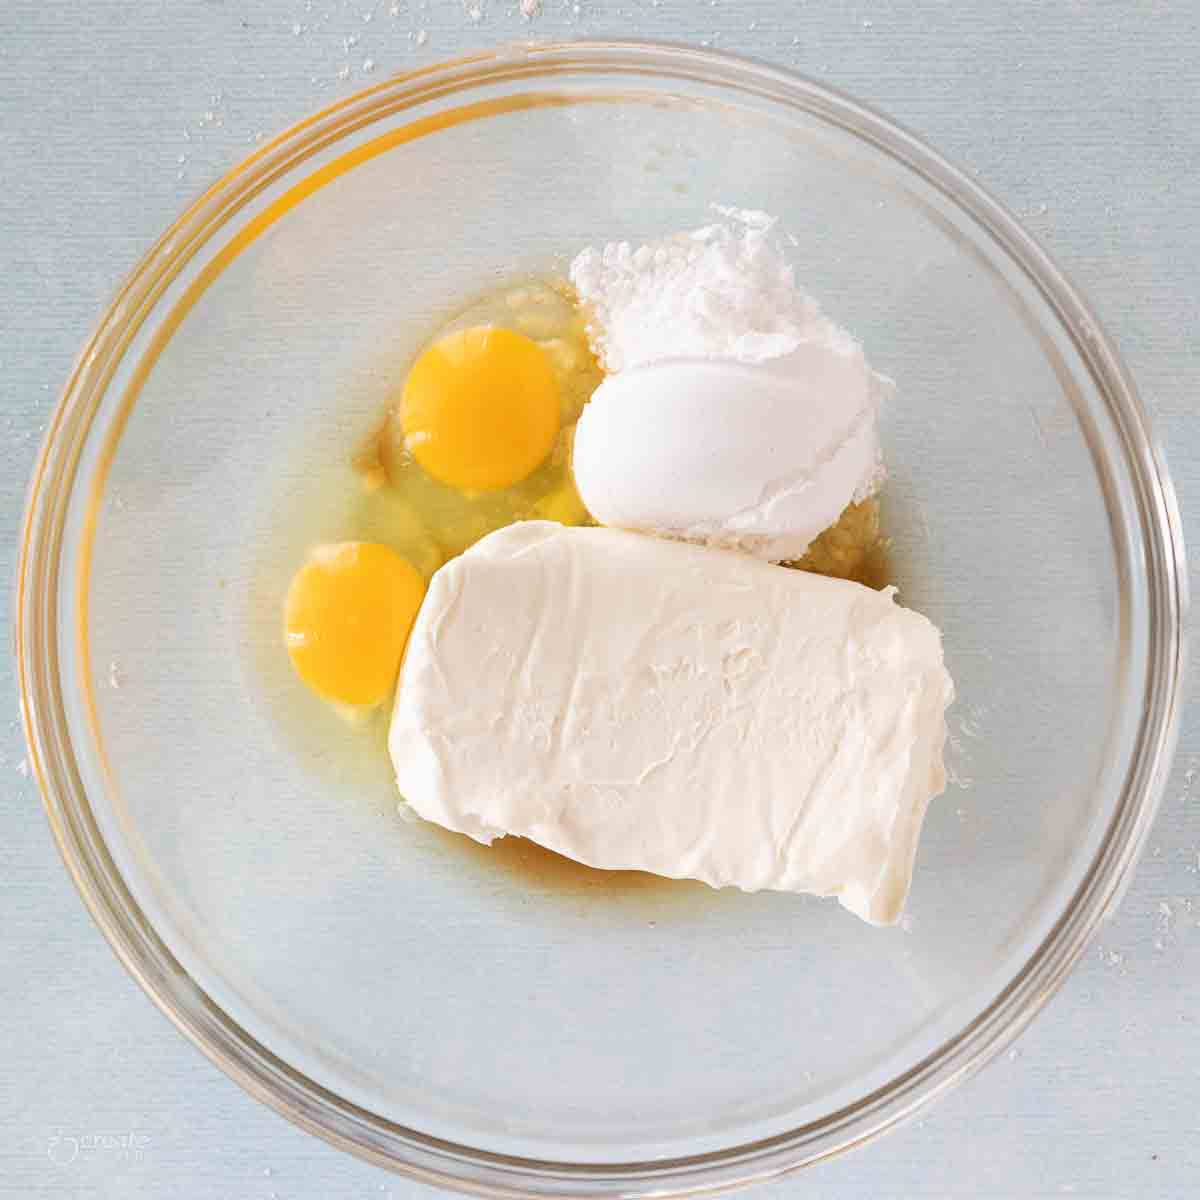 Cream cheese, eggs, and powdered sugar in a glass bowl.